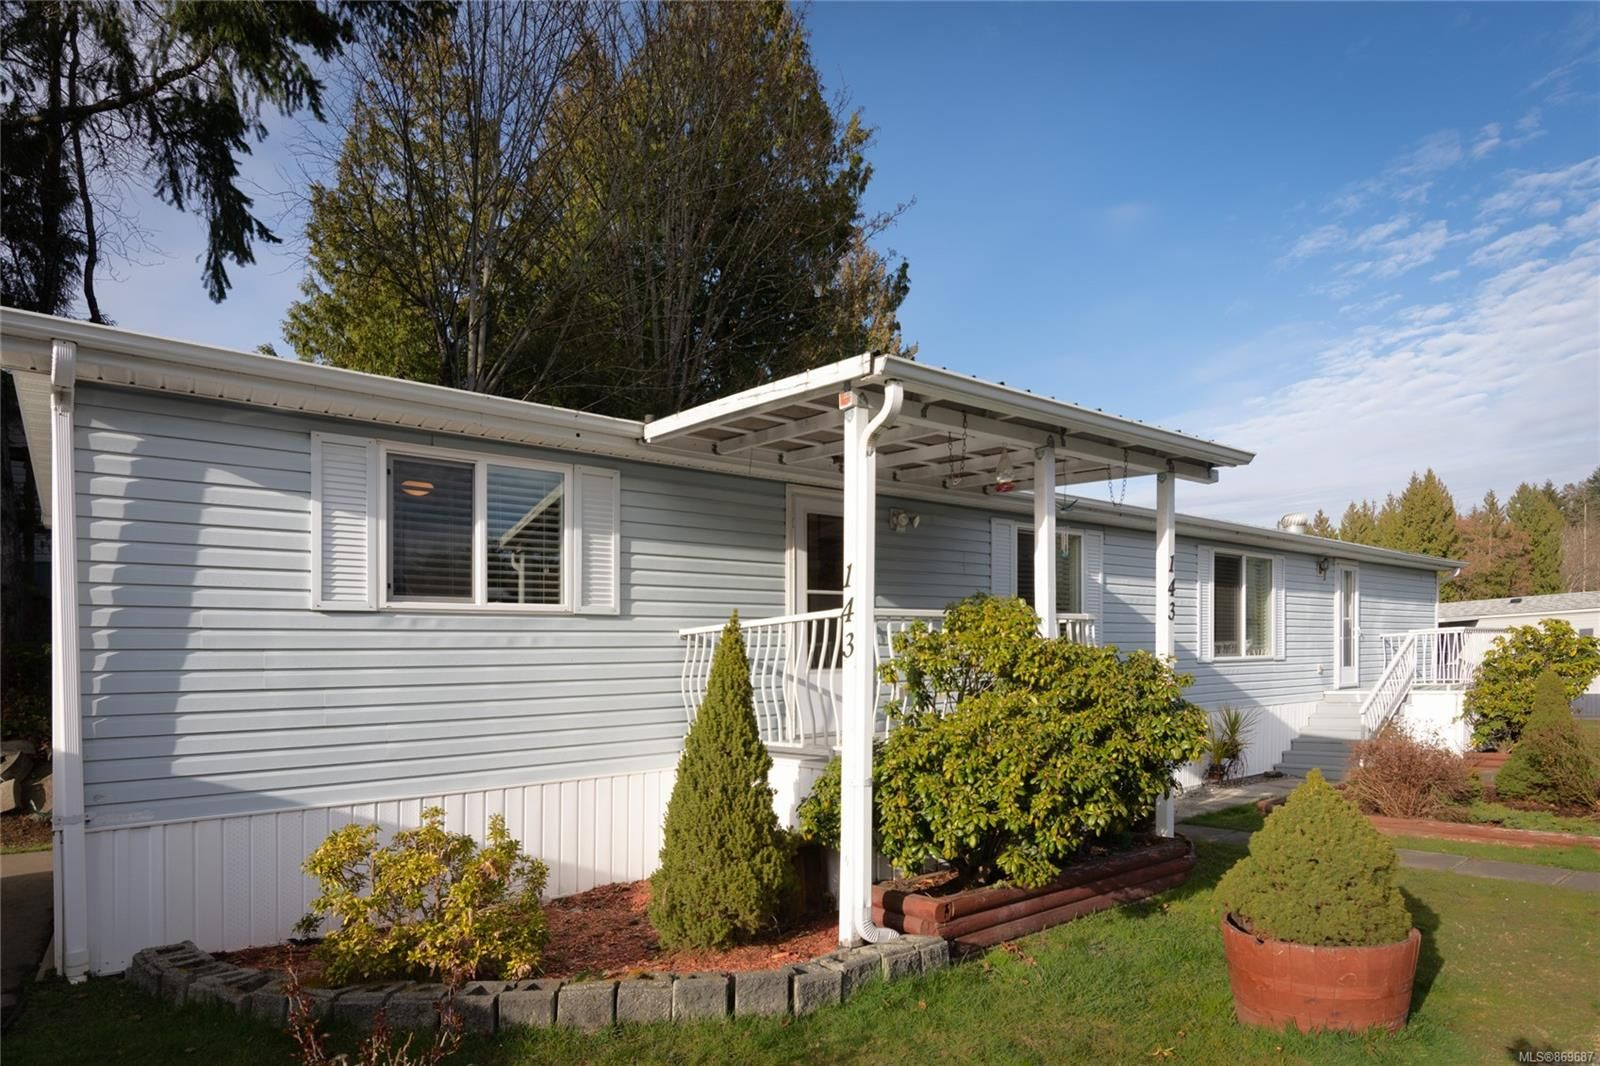 Main Photo: 143 25 Maki Rd in : Na Chase River Manufactured Home for sale (Nanaimo)  : MLS®# 869687